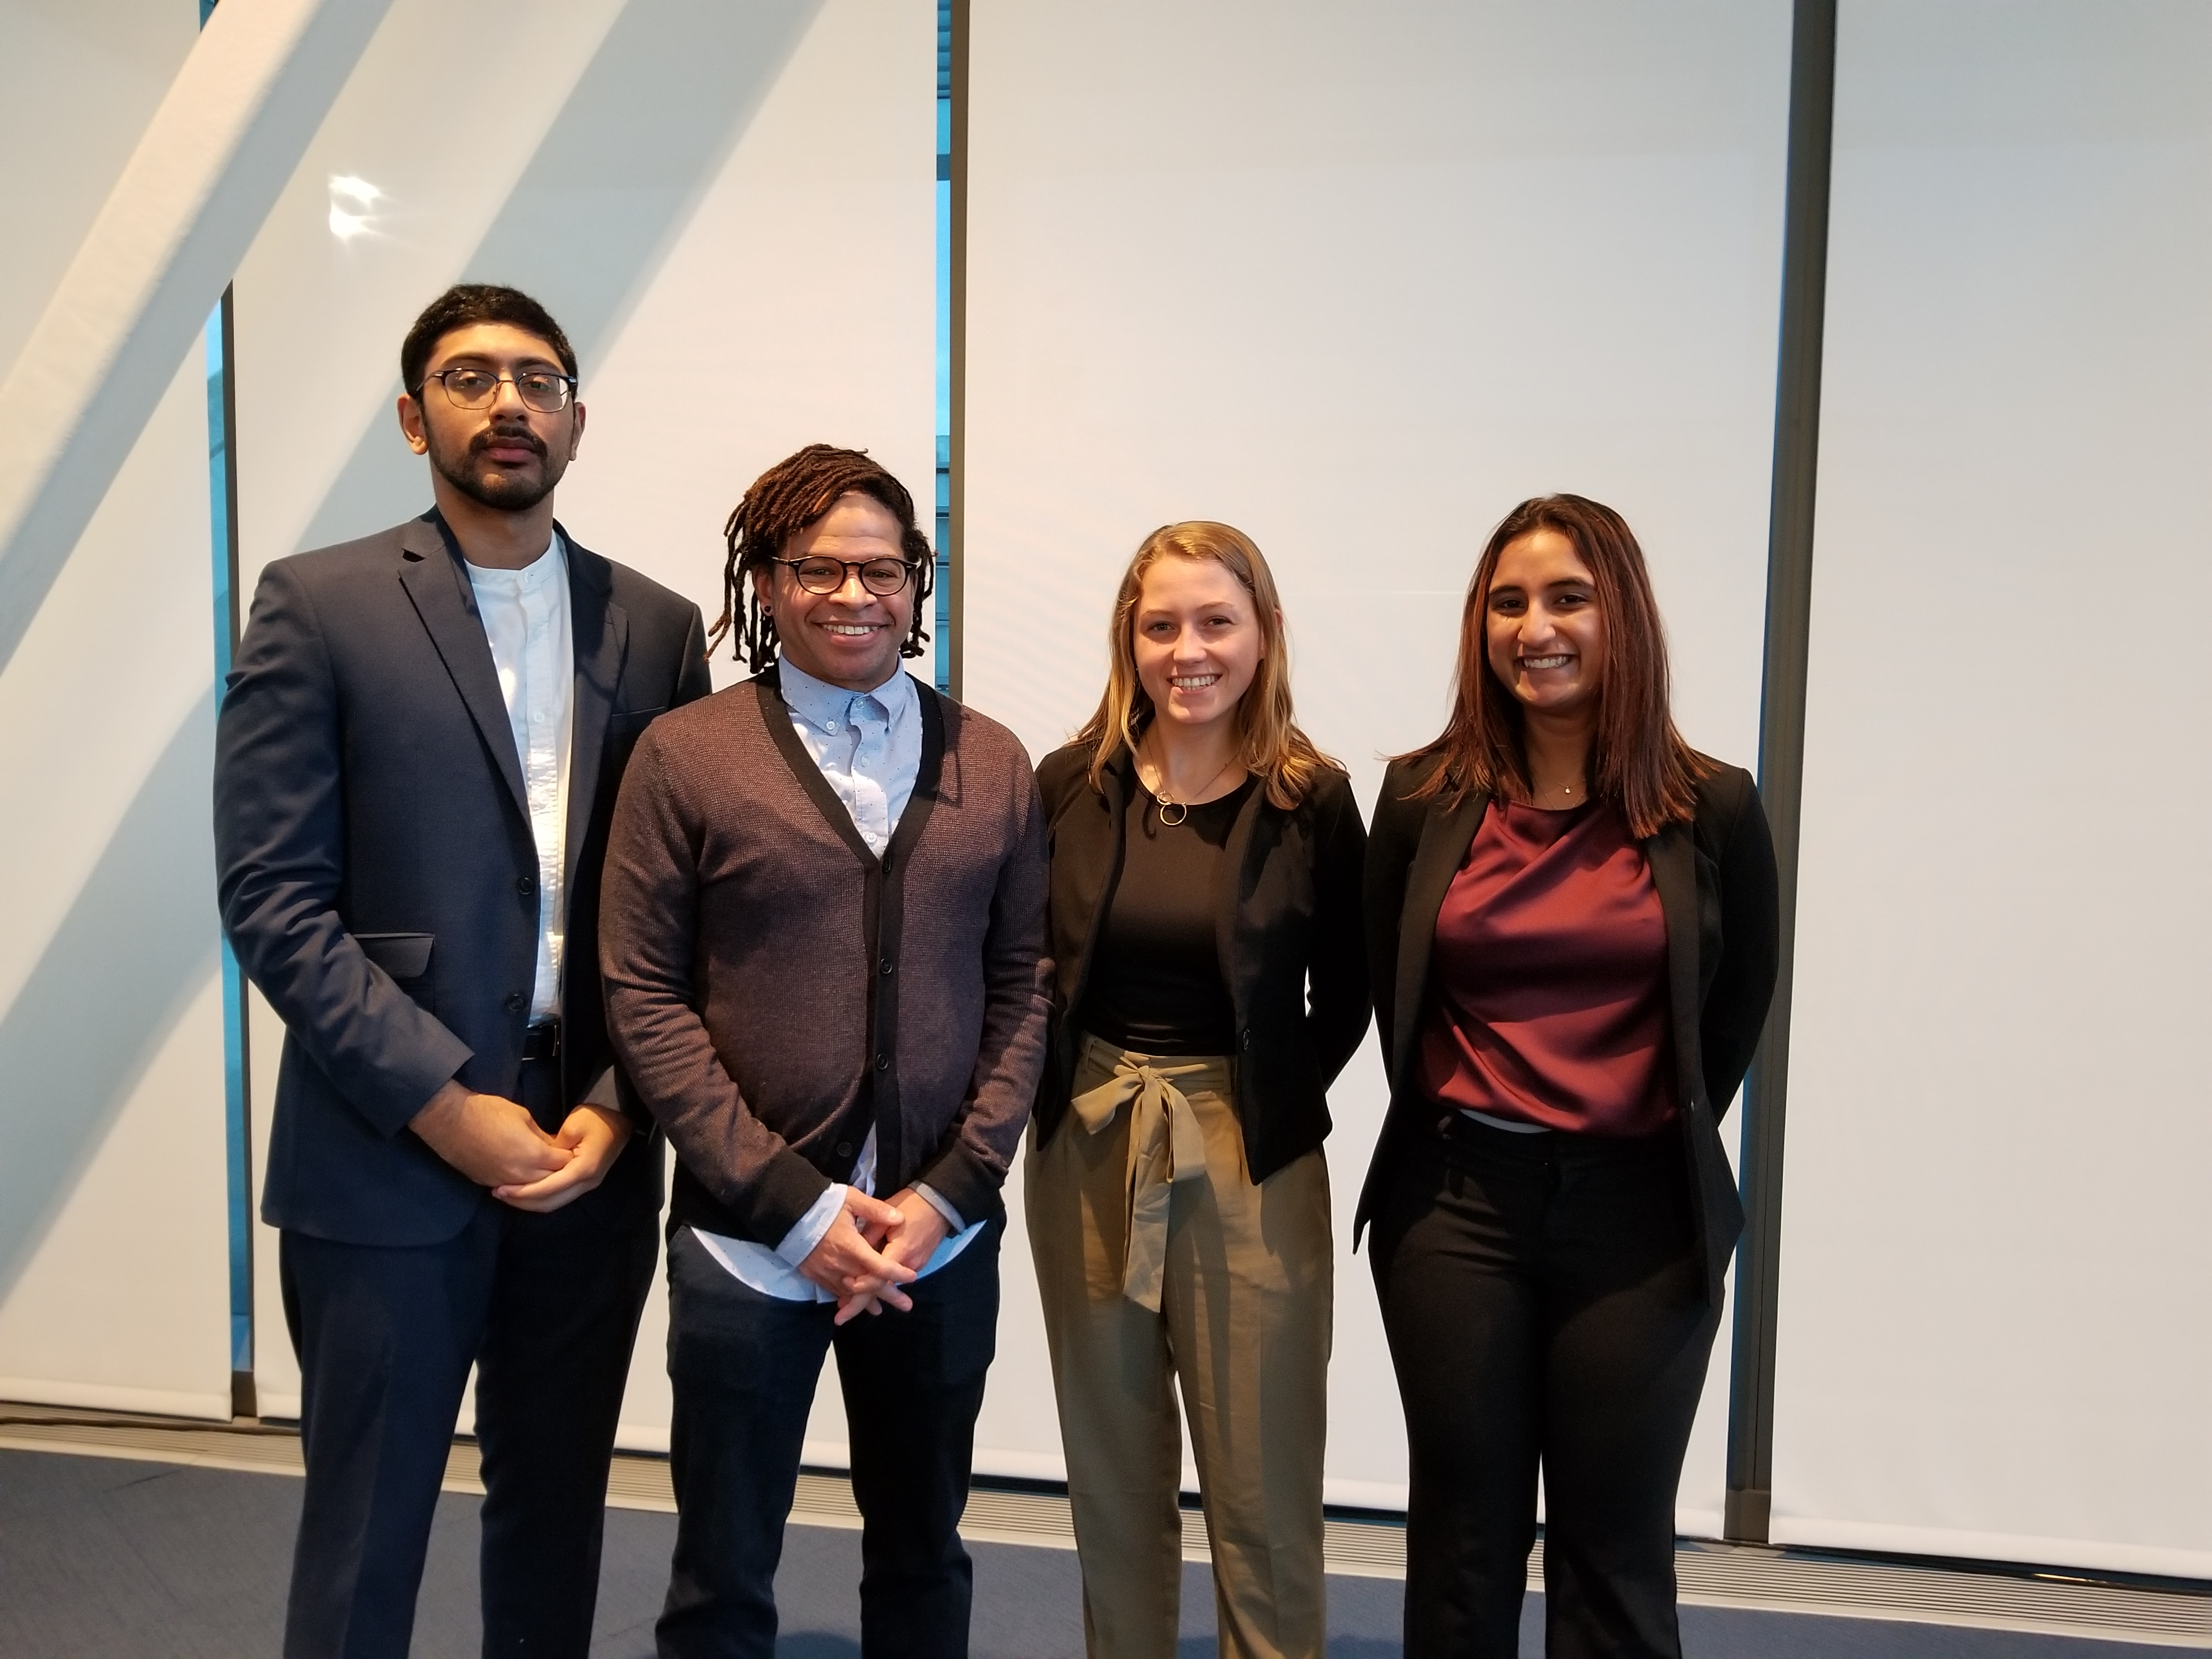 Professor Girma Parris and his advisees, Vishnu Akella, Marin Exler, and Sneha Darbha.